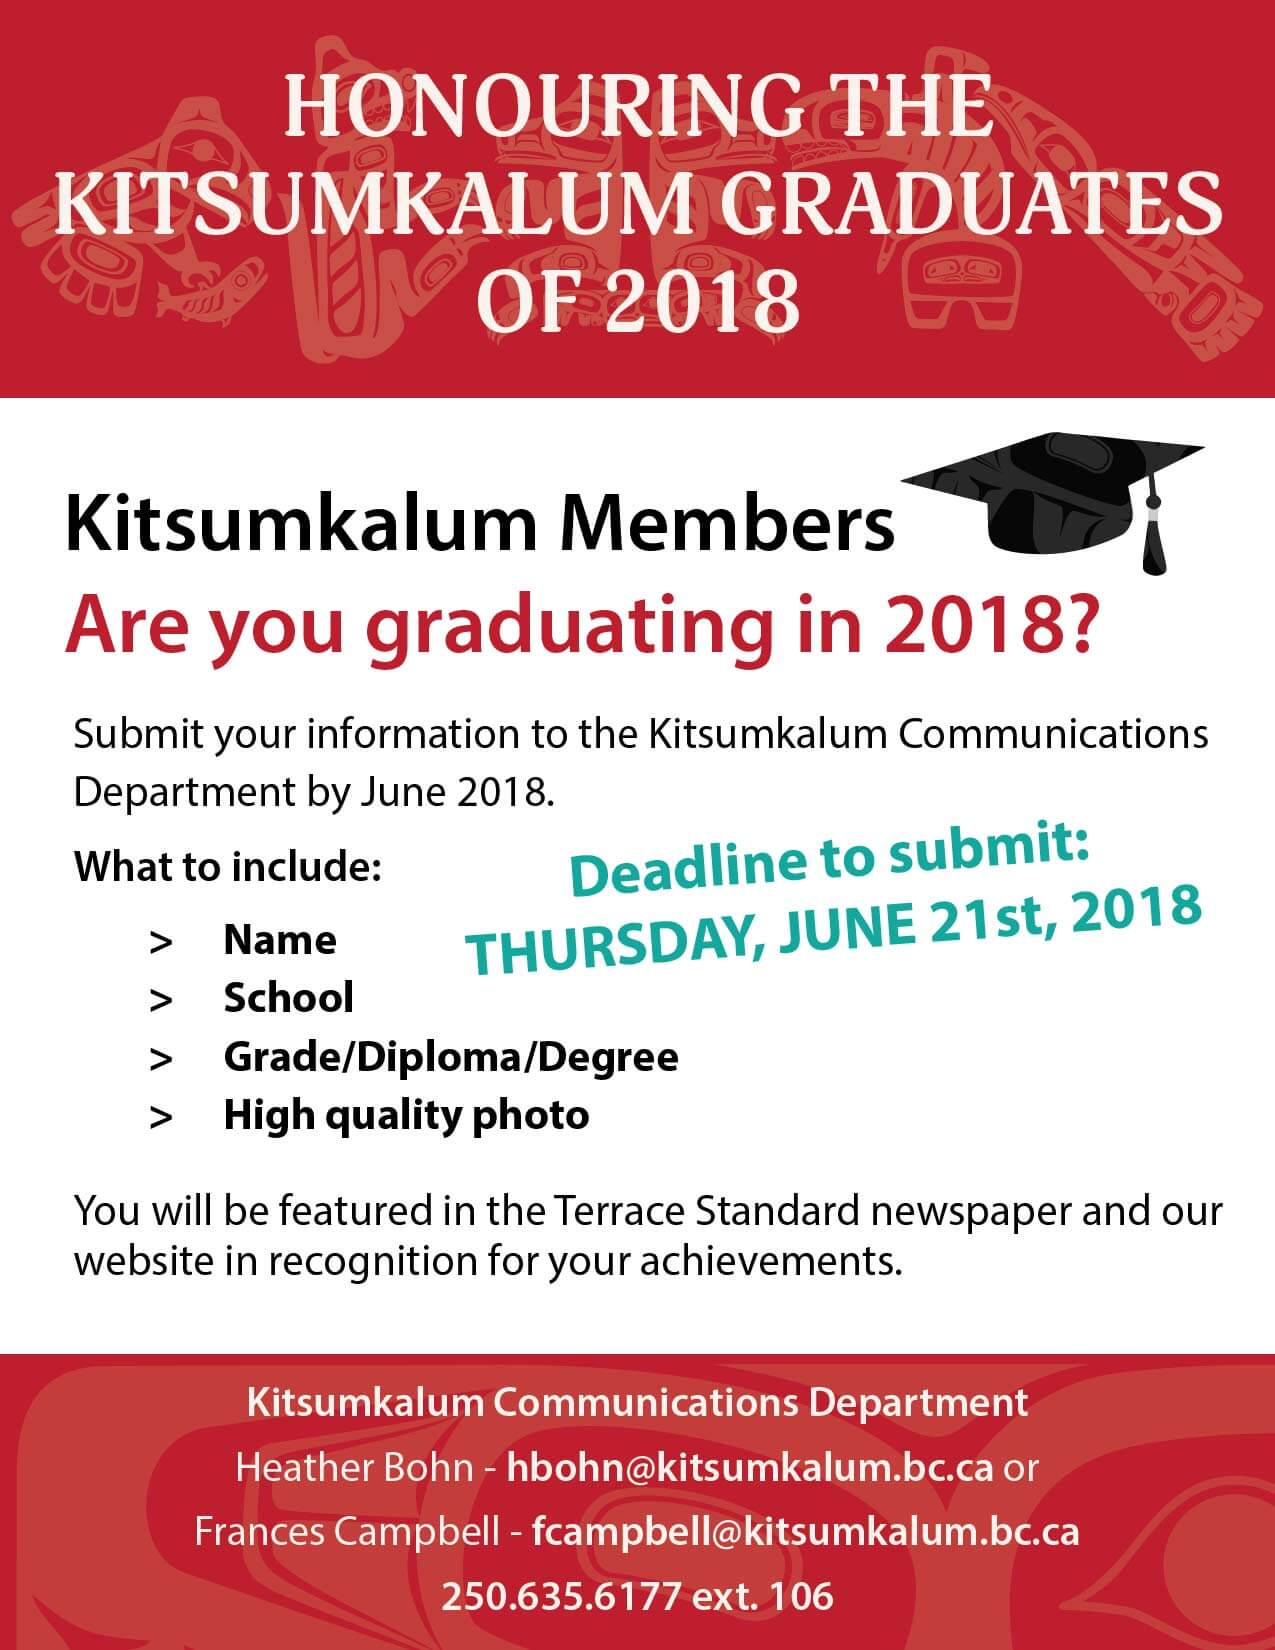 Graduating This Year? Submit Your Information by June 21st